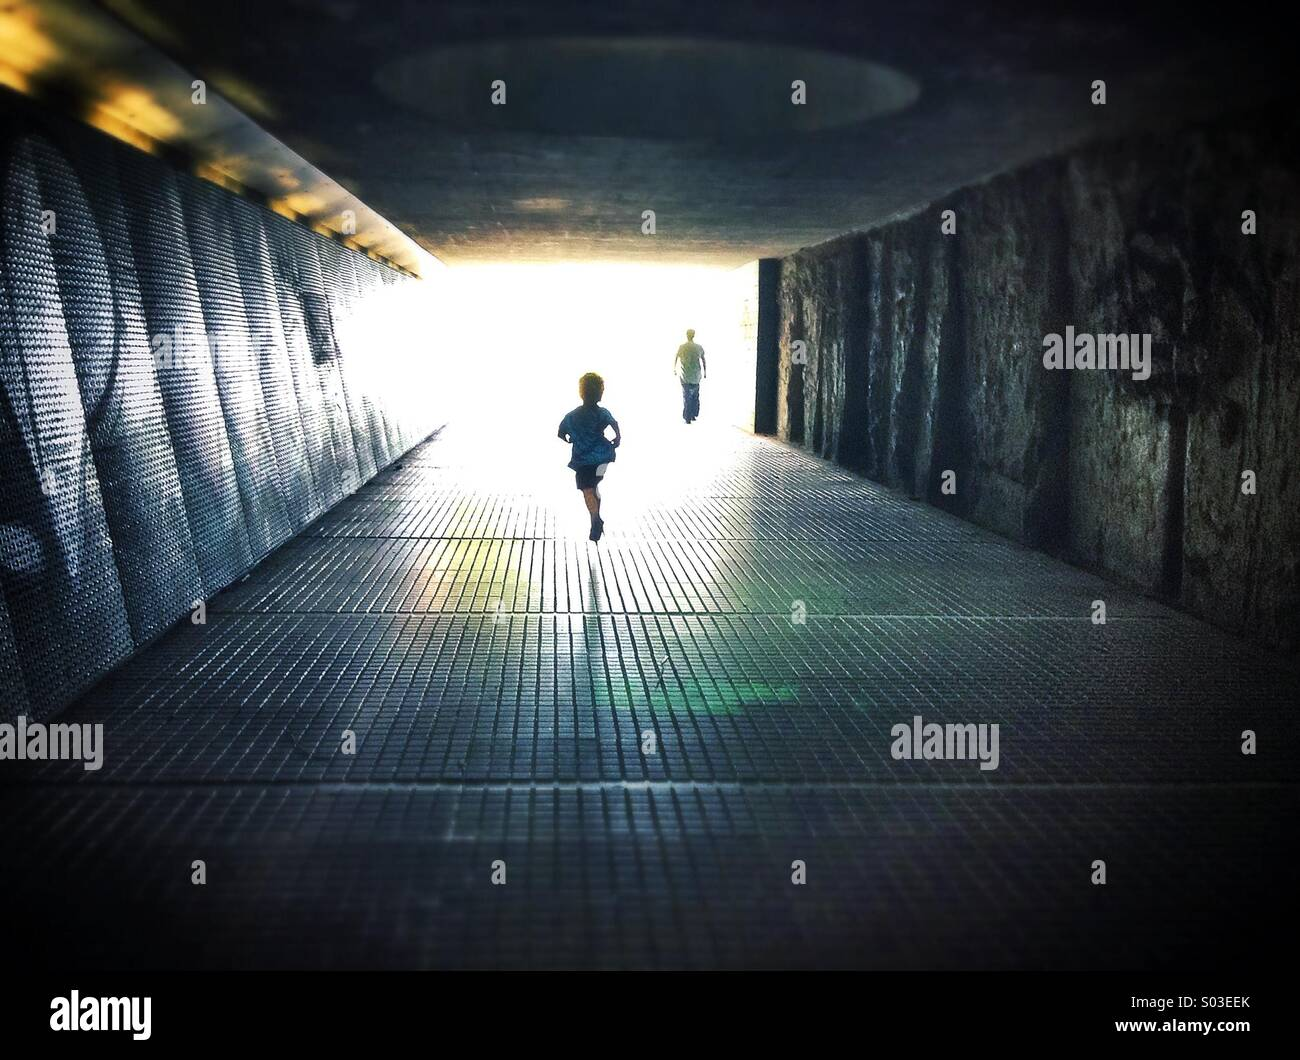 Silhouettes walking through a dark under pass simbolizing light at the end of the tunnel Stock Photo